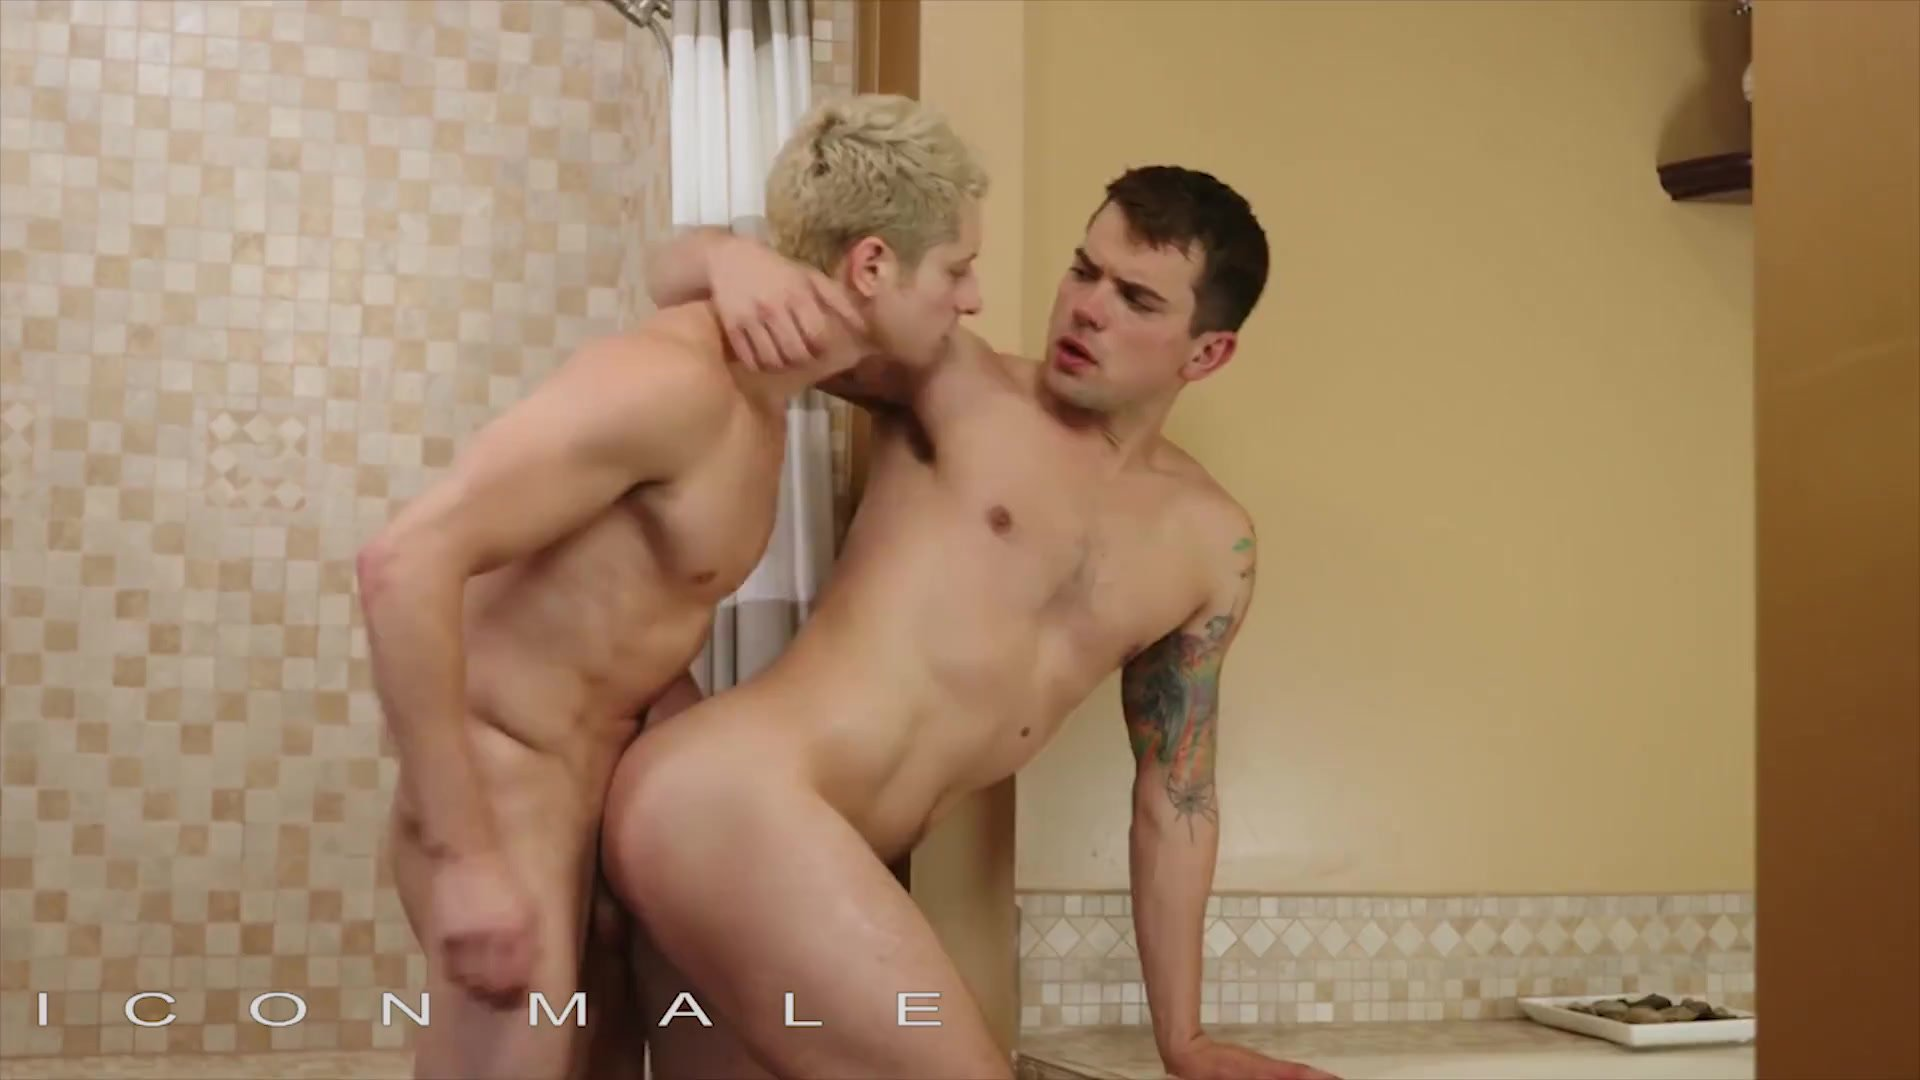 Icon Male - Two Hunks Armond Rizzo & Argos Santini Fucking In The Shower Room